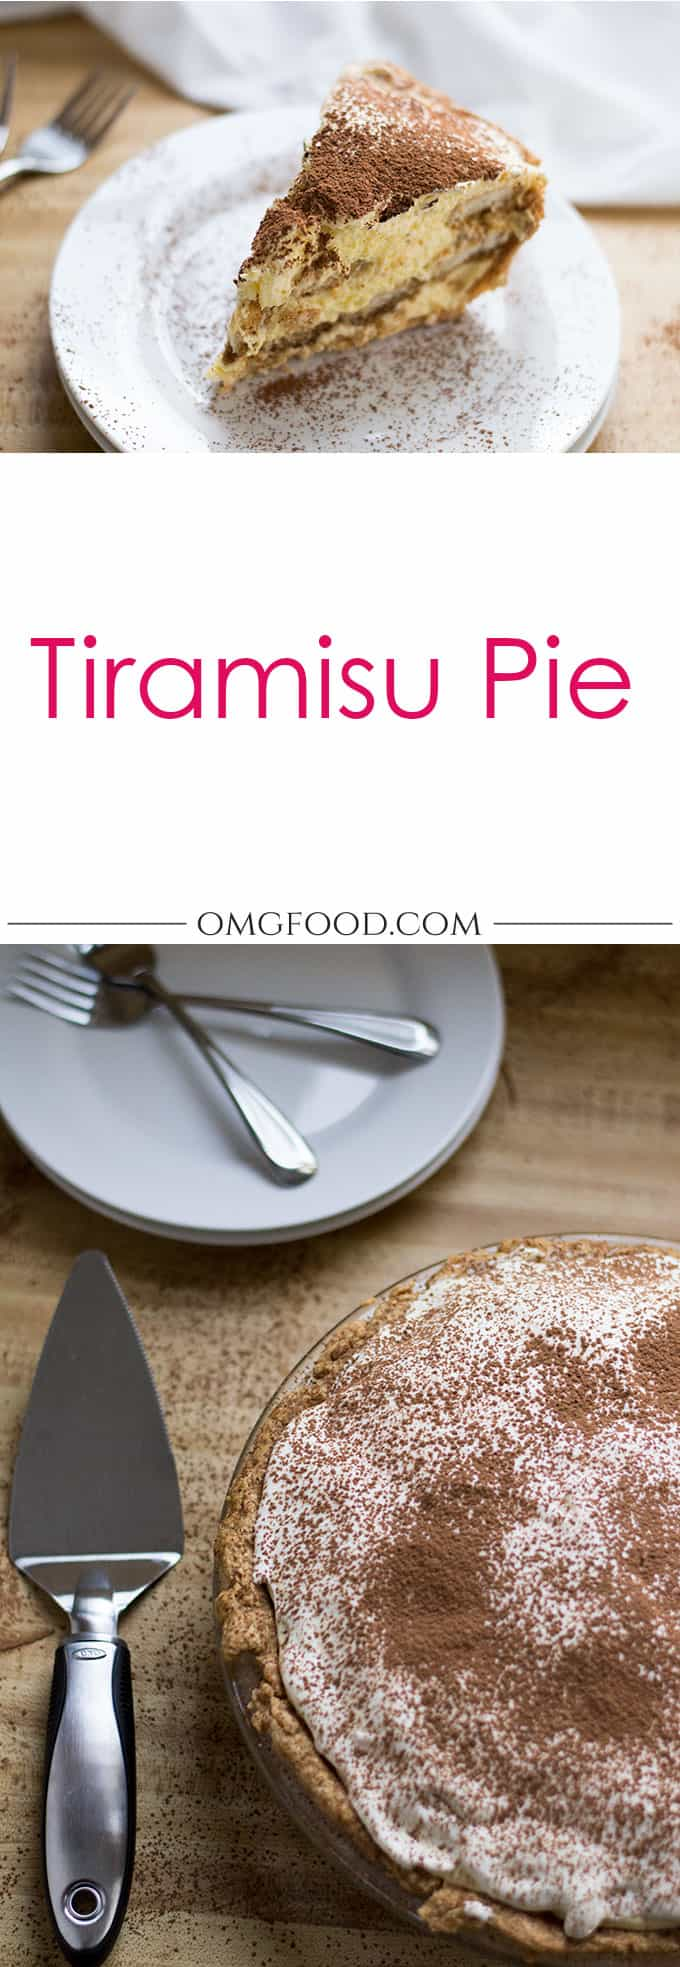 Pinterest banner for tiramisu pie.